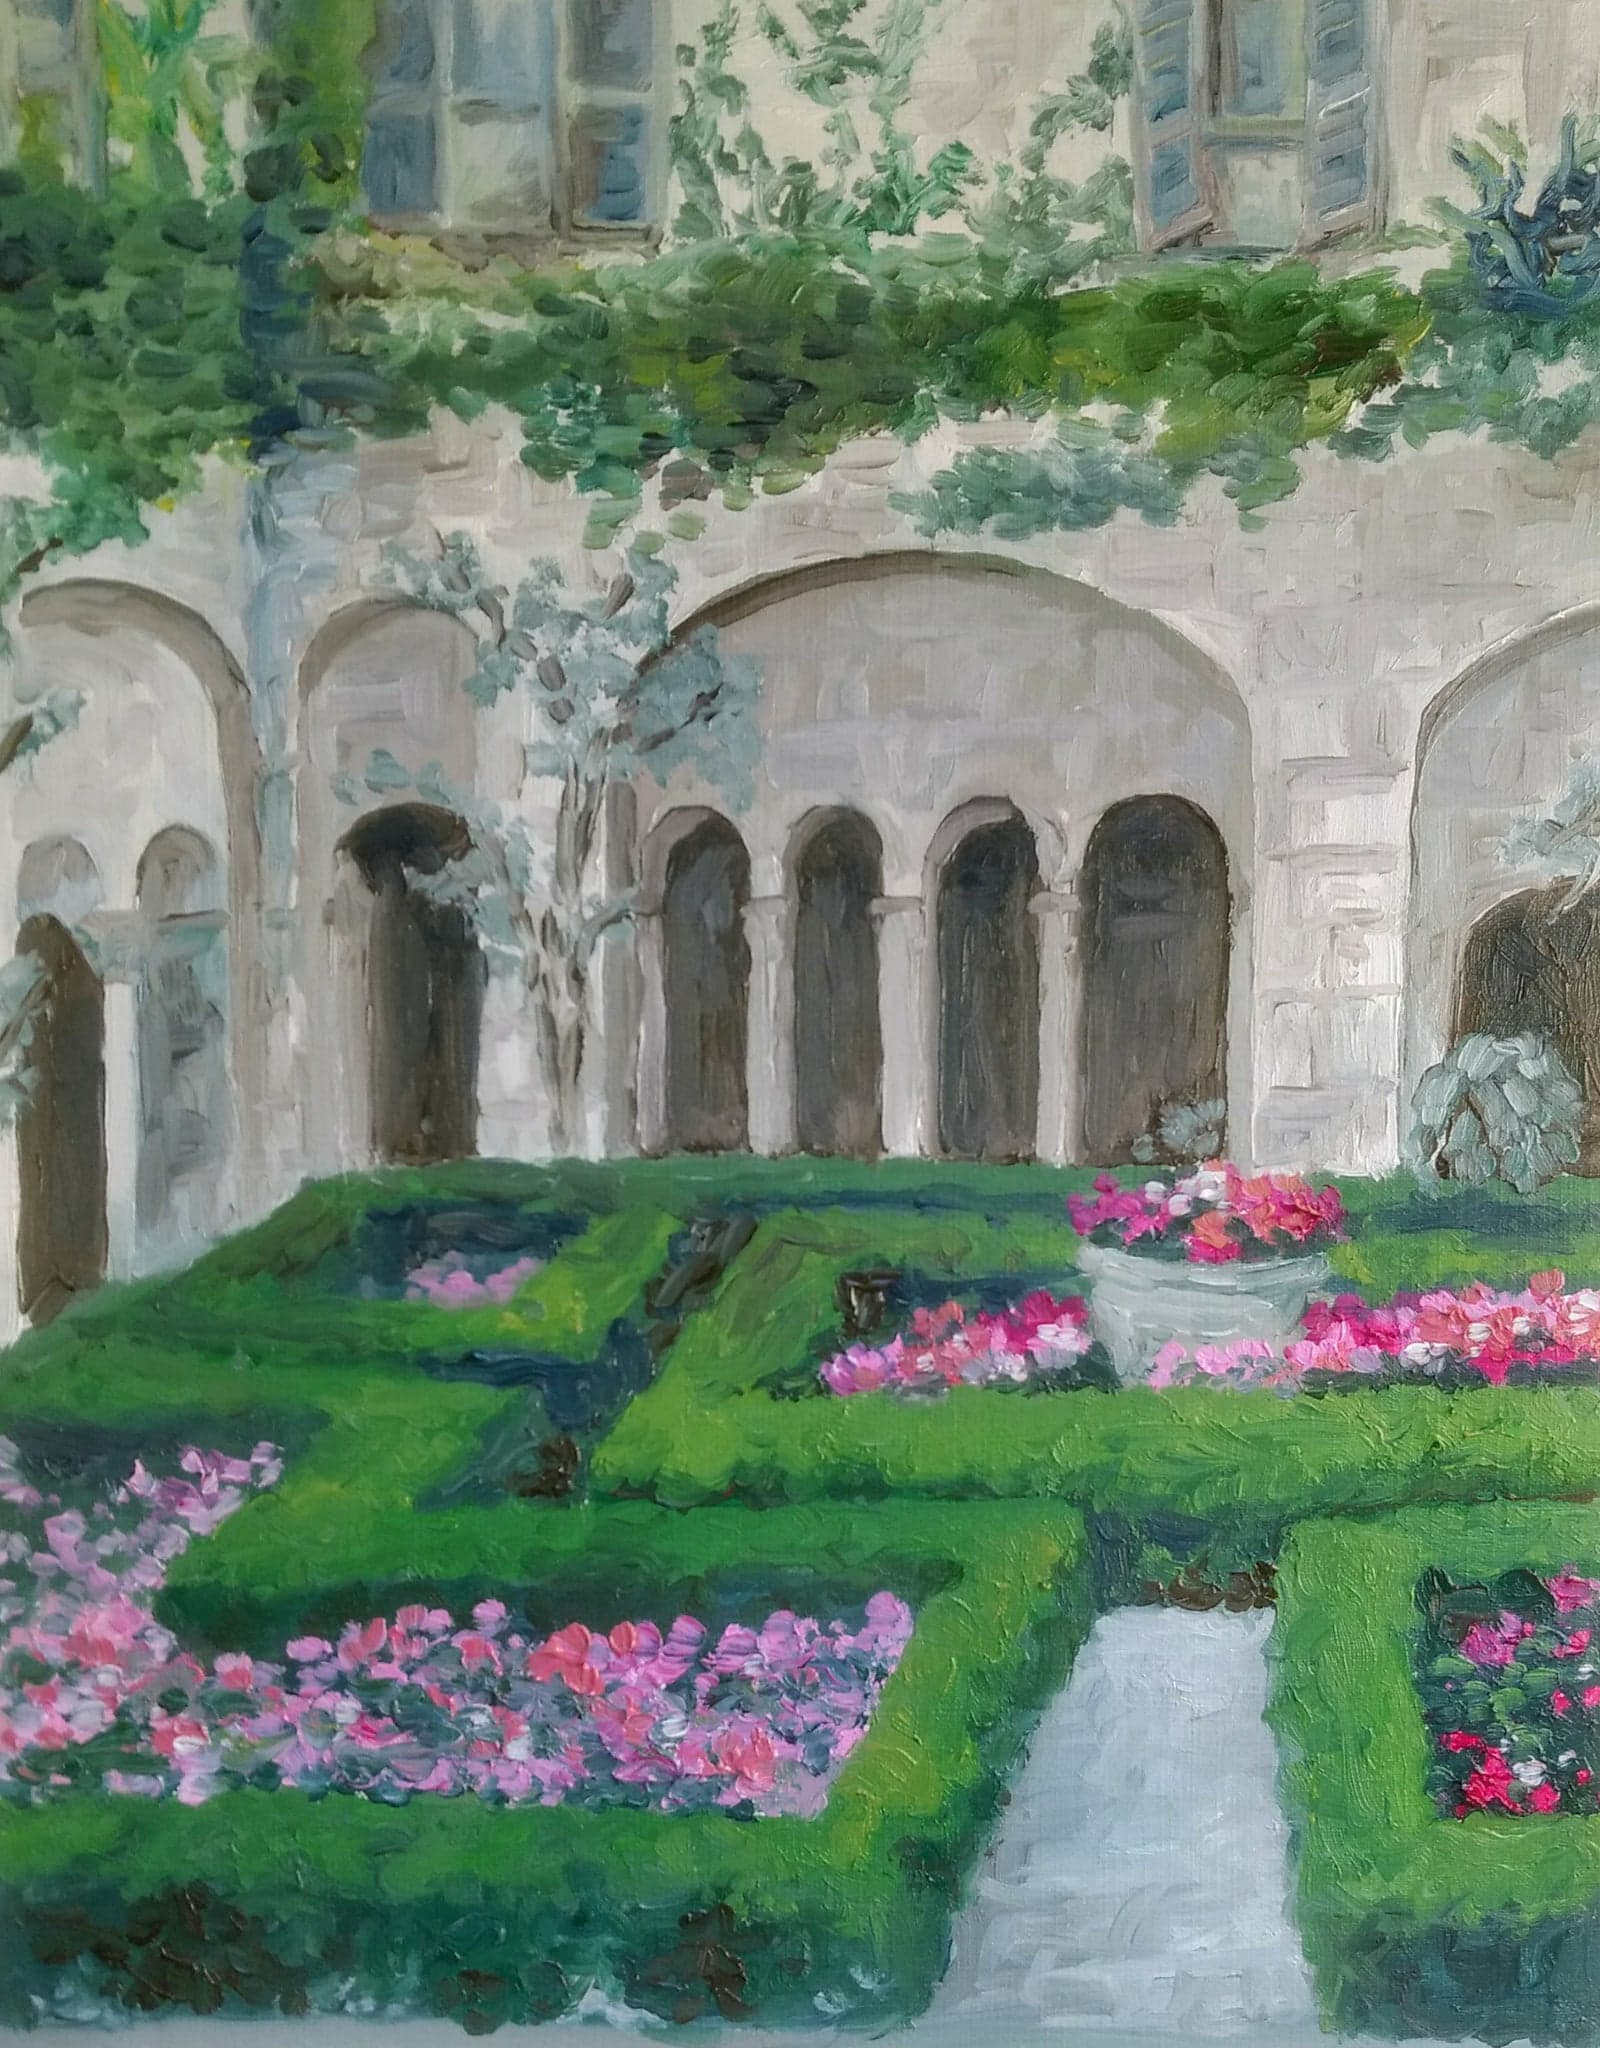 Cloister of St. Remy   2017  9 in x 12 in  Oil on Paper